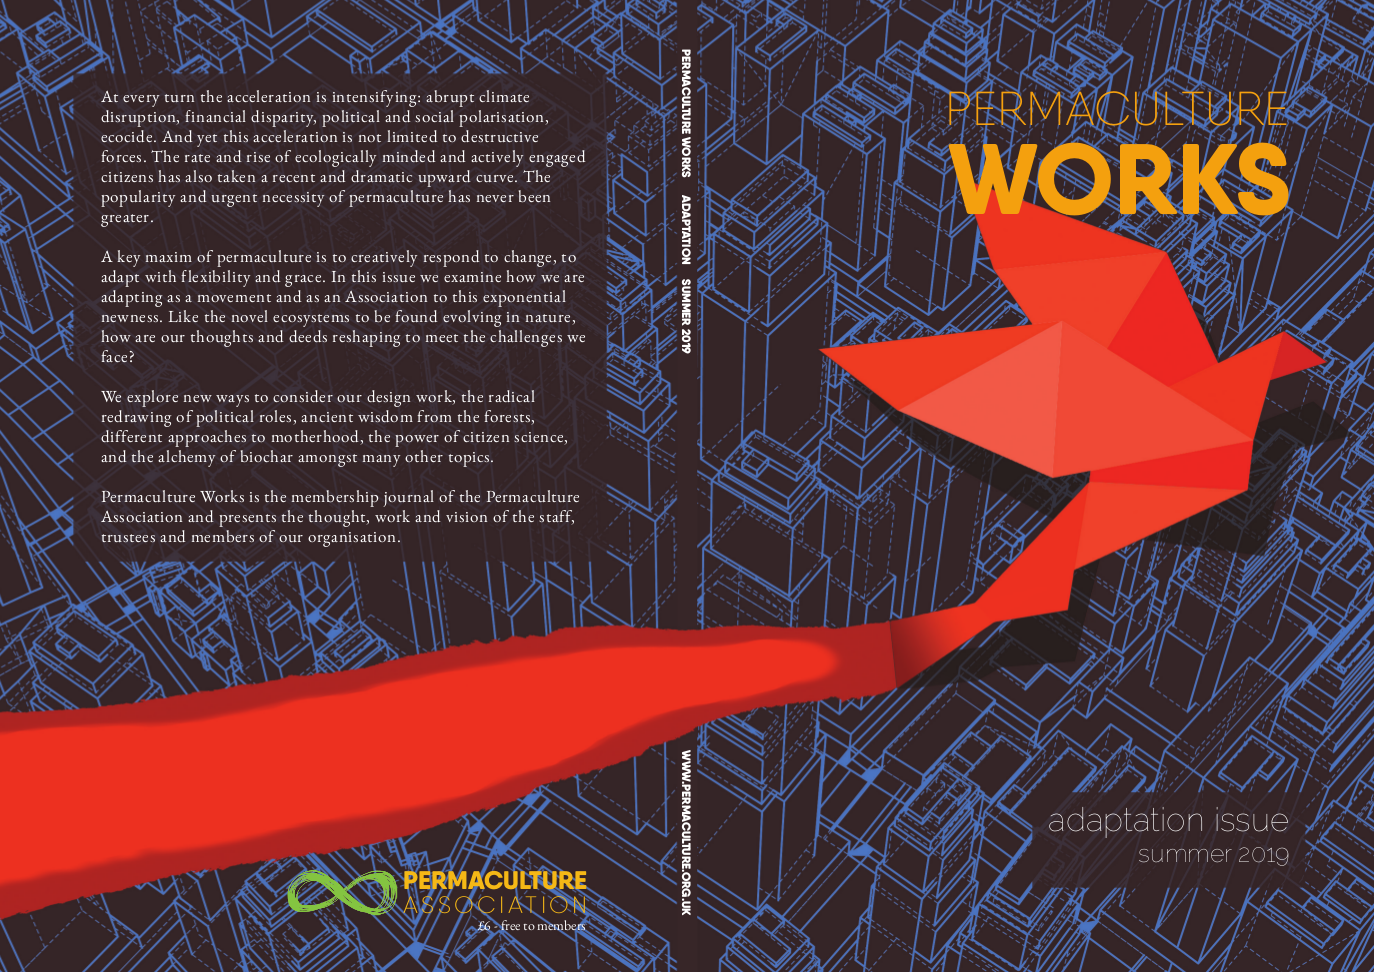 Permaculture Works adaptation cover